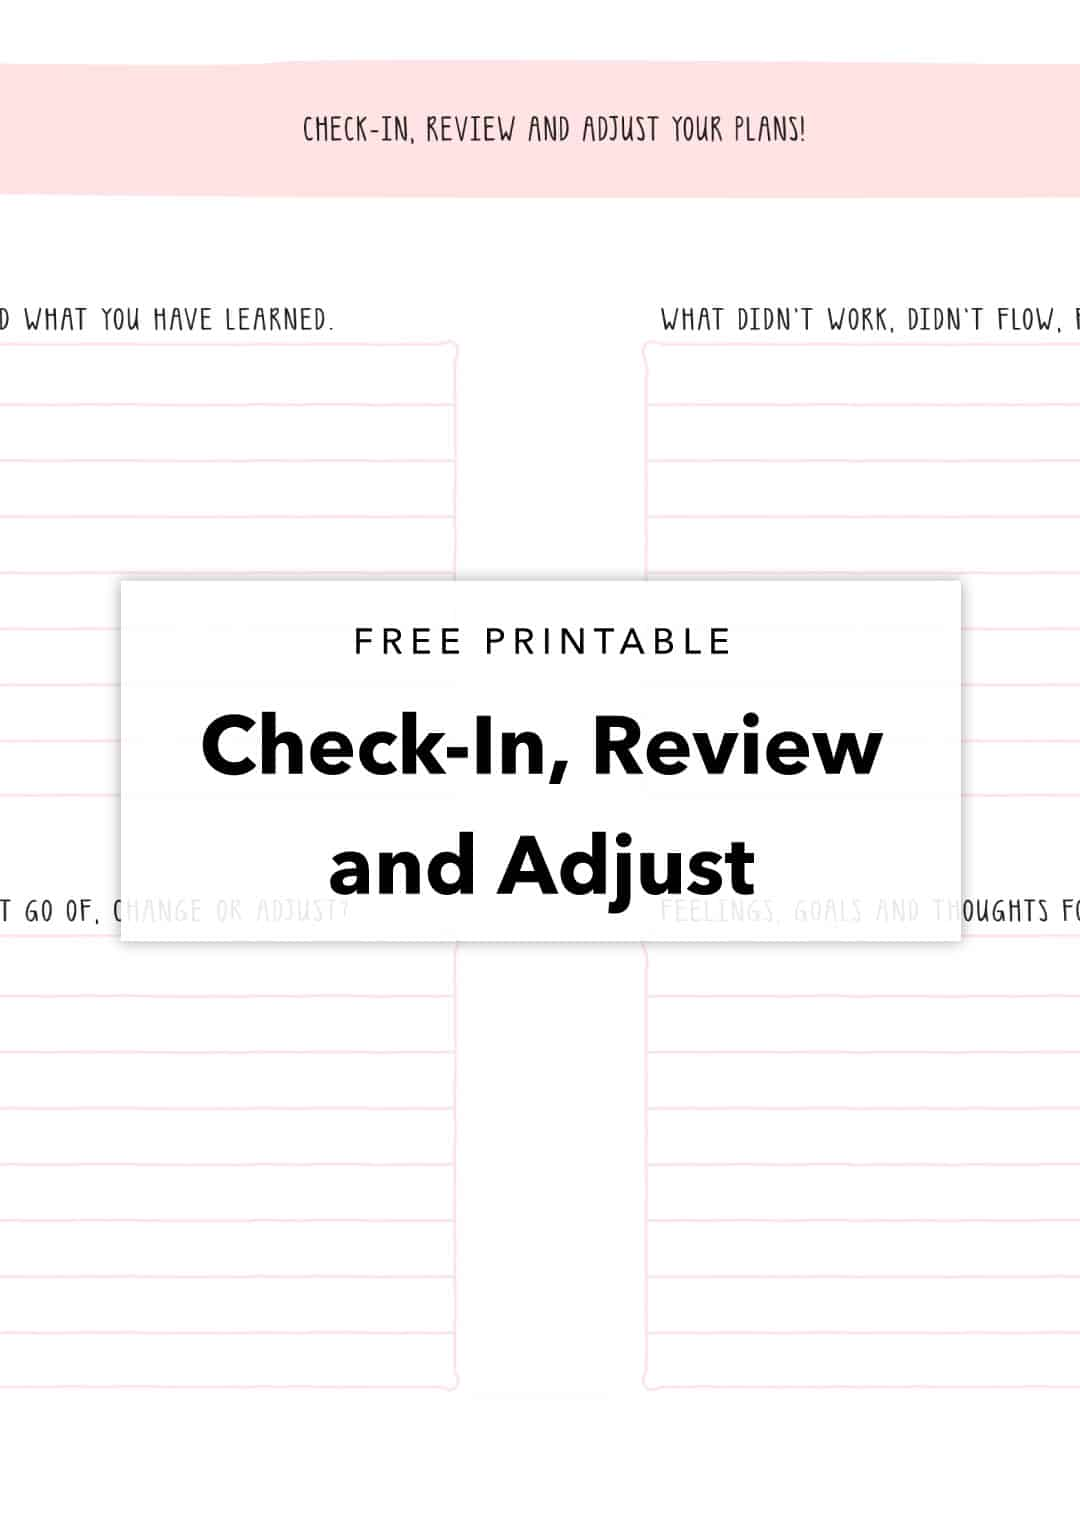 free printable check-in review and adjust your plans